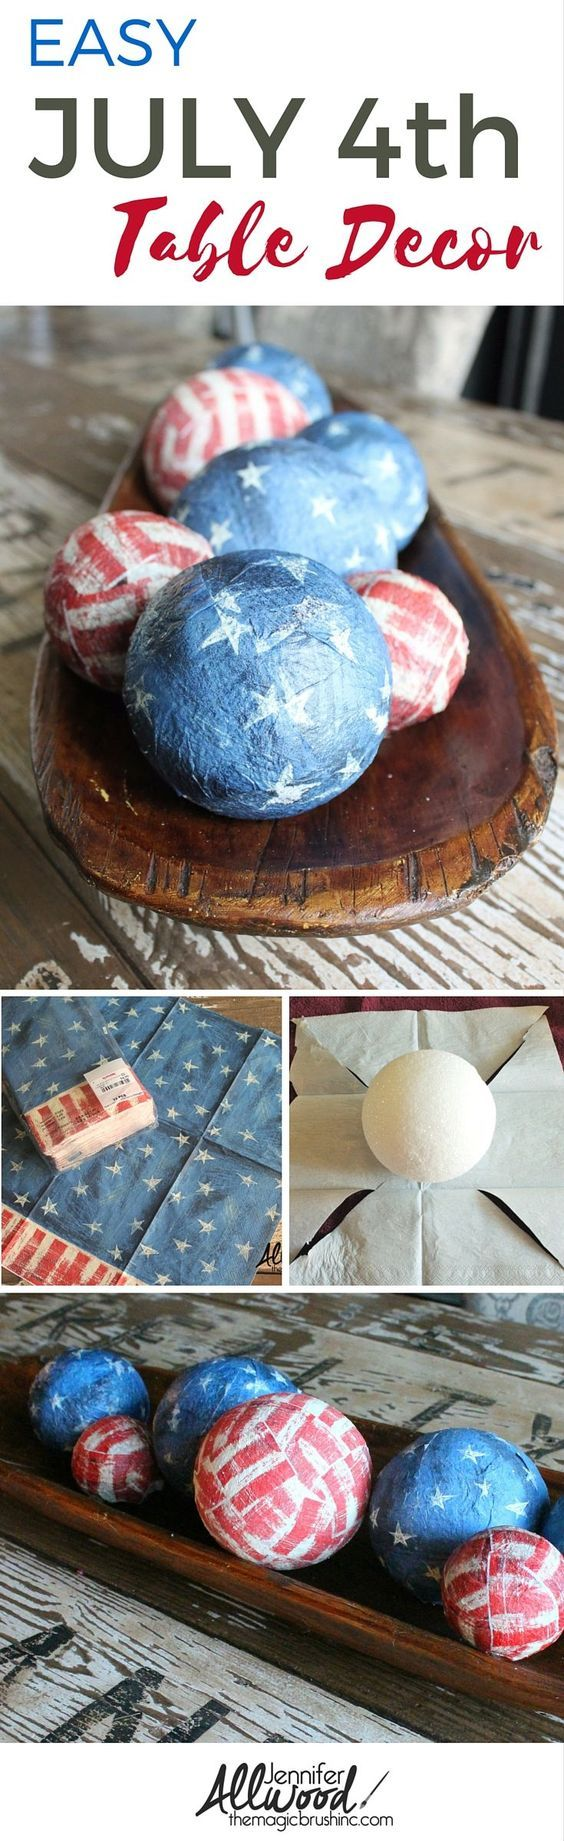 Decoupage Styrofoam Balls With Flag Napkins For Table Decoration.